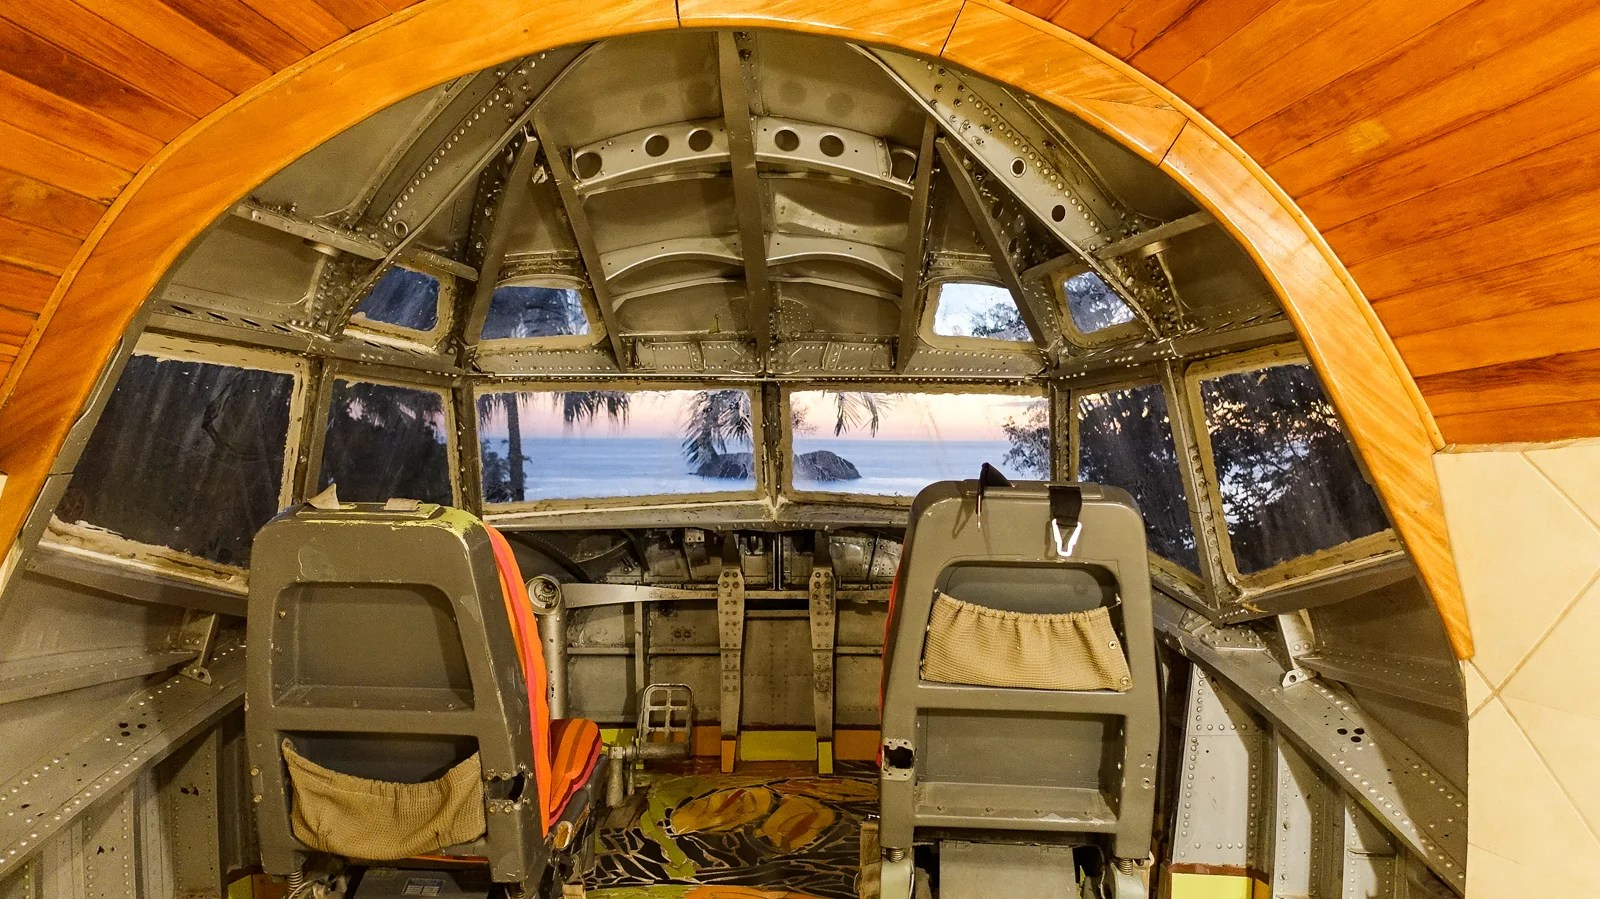 A Review of the Fuselage Suite at the Hotel Costa Verde, Costa Rica